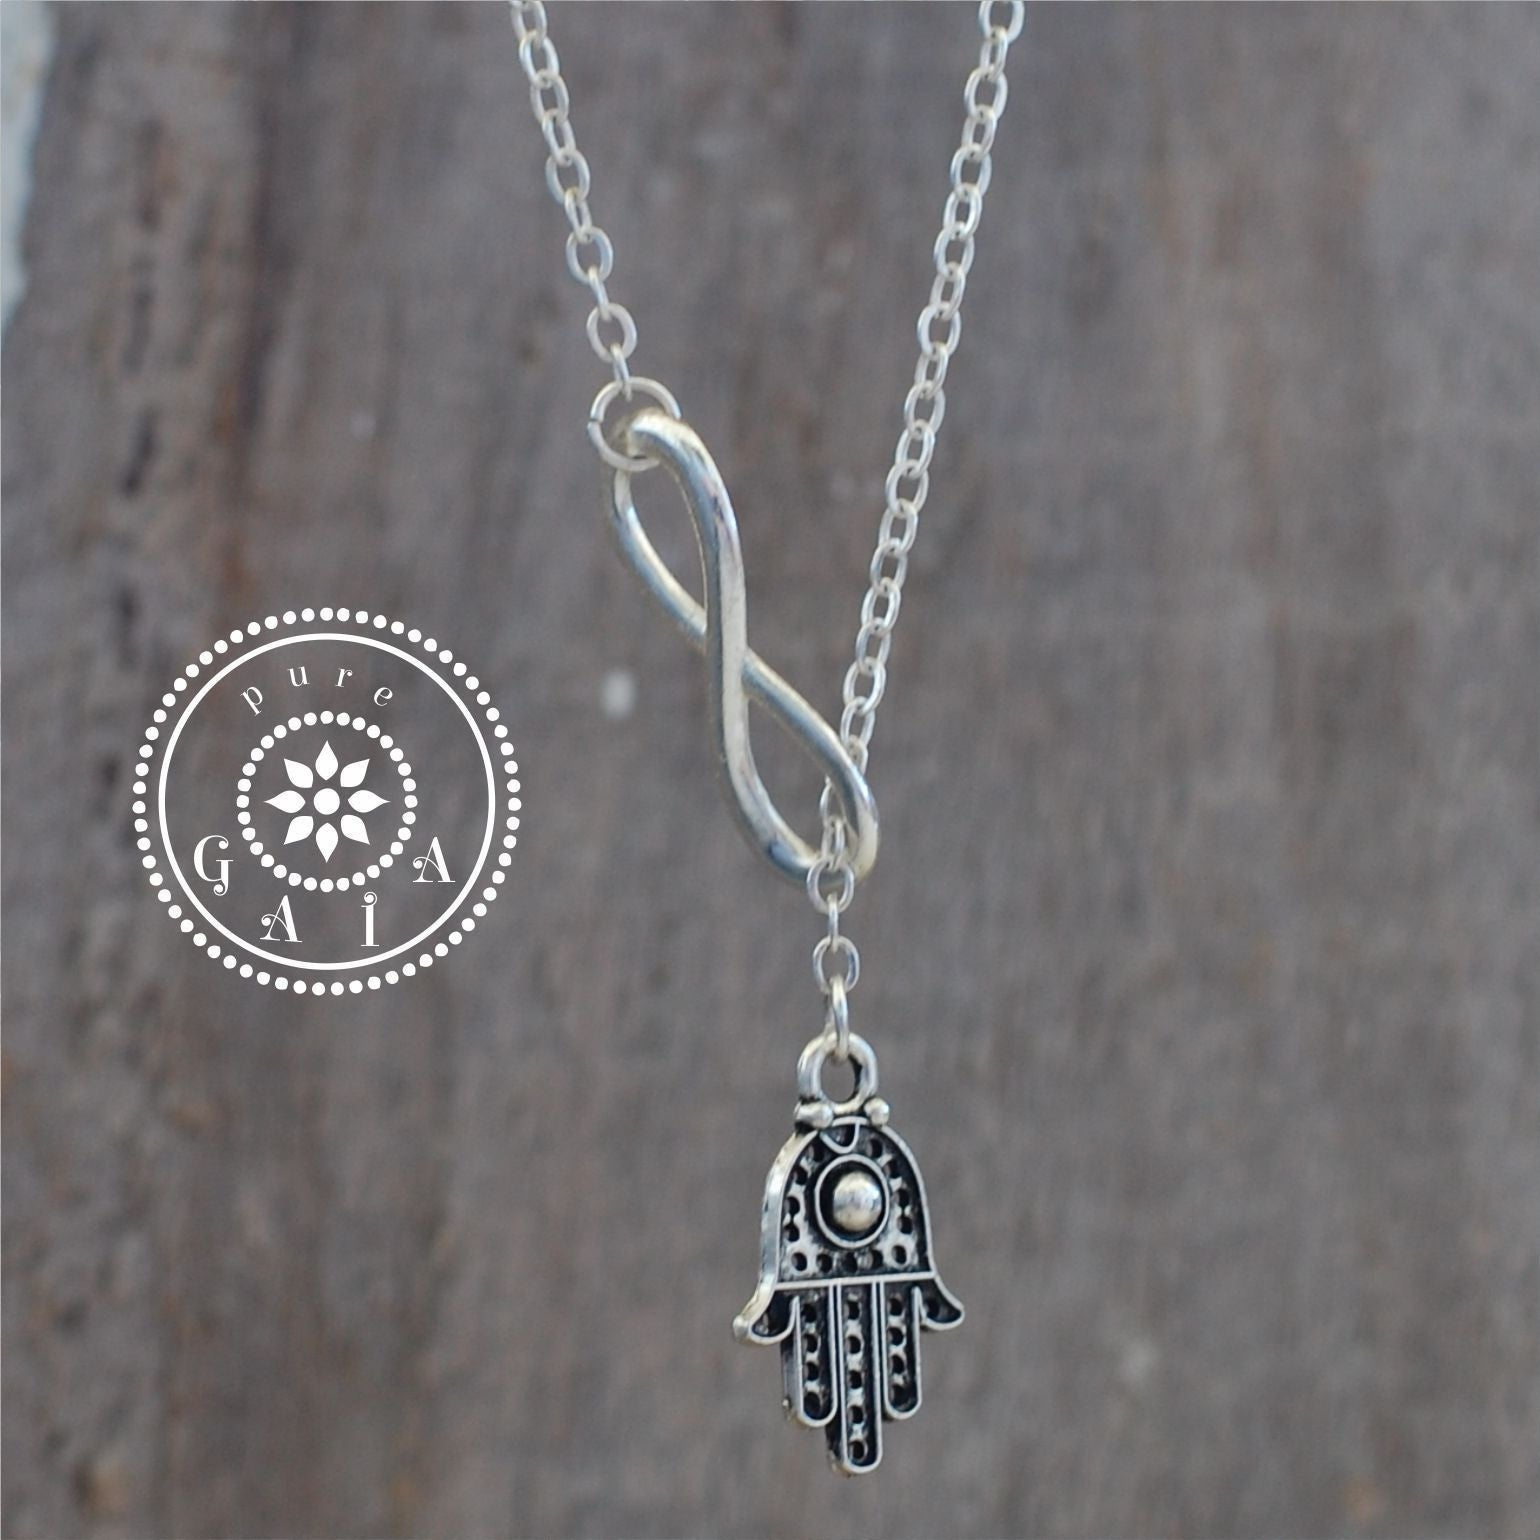 Infinity fatima hamsa hand pendants necklace ethnic xox pure gaia infinity fatima hamsa hand pendants necklace ethnic xox mozeypictures Image collections